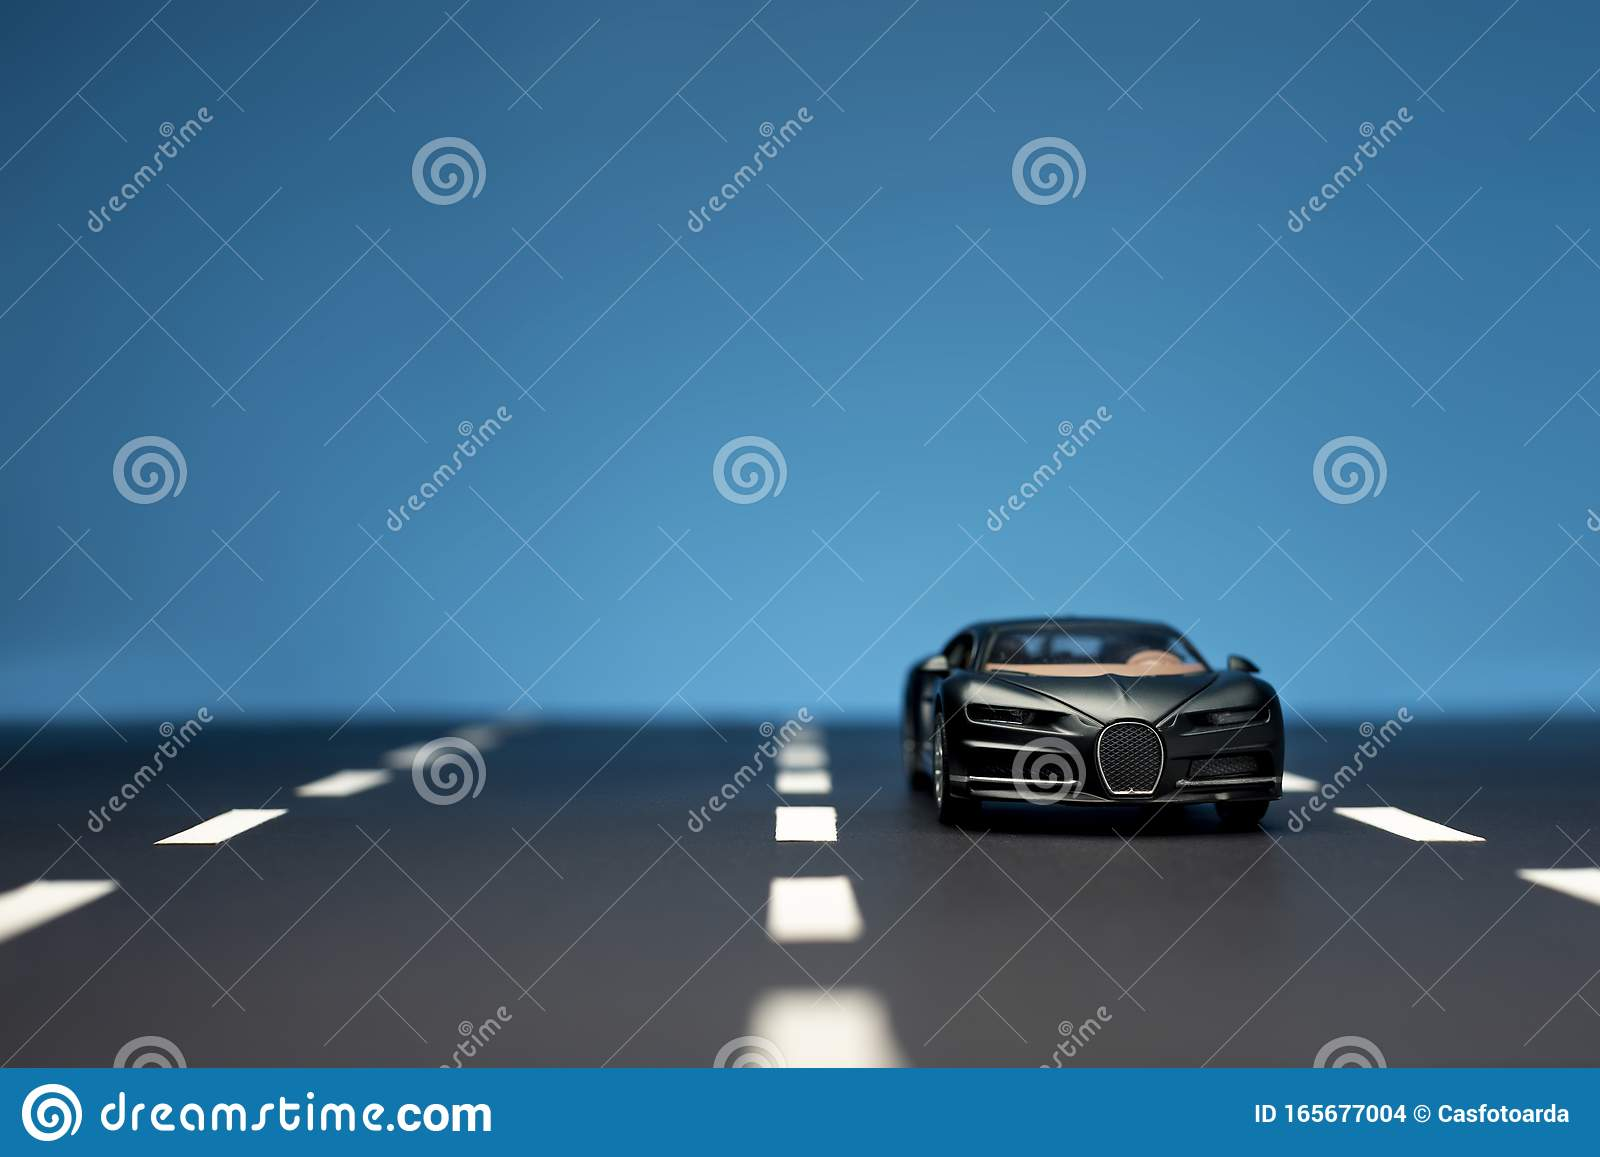 Front View Of A Black Colored Bugatti Veyron Toy Car Editorial Stock Image Image Of Concept Headlight 165677004